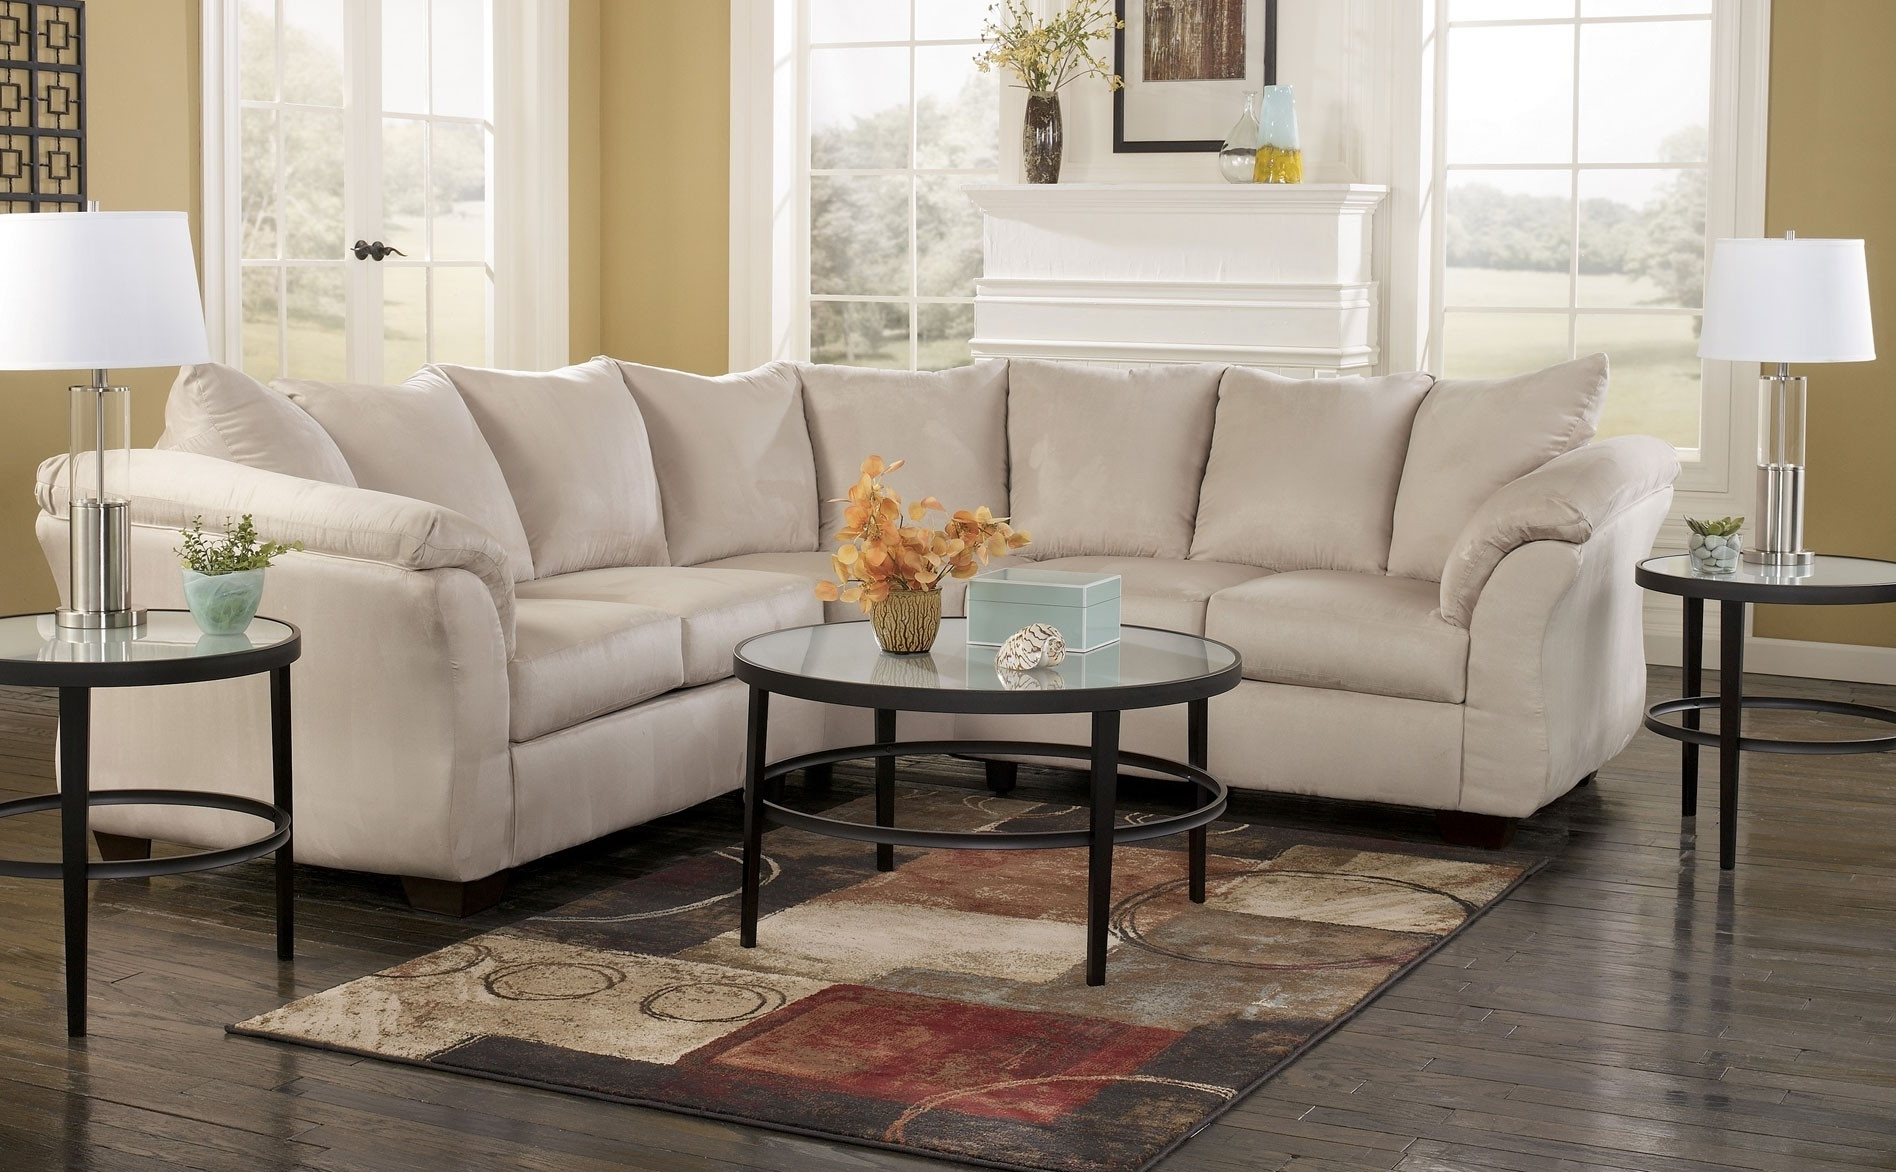 Furniture: Inspiring Living Room Decor With Cheap Sectional Sofas Regarding Widely Used Mathis Brothers Sectional Sofas (View 6 of 15)